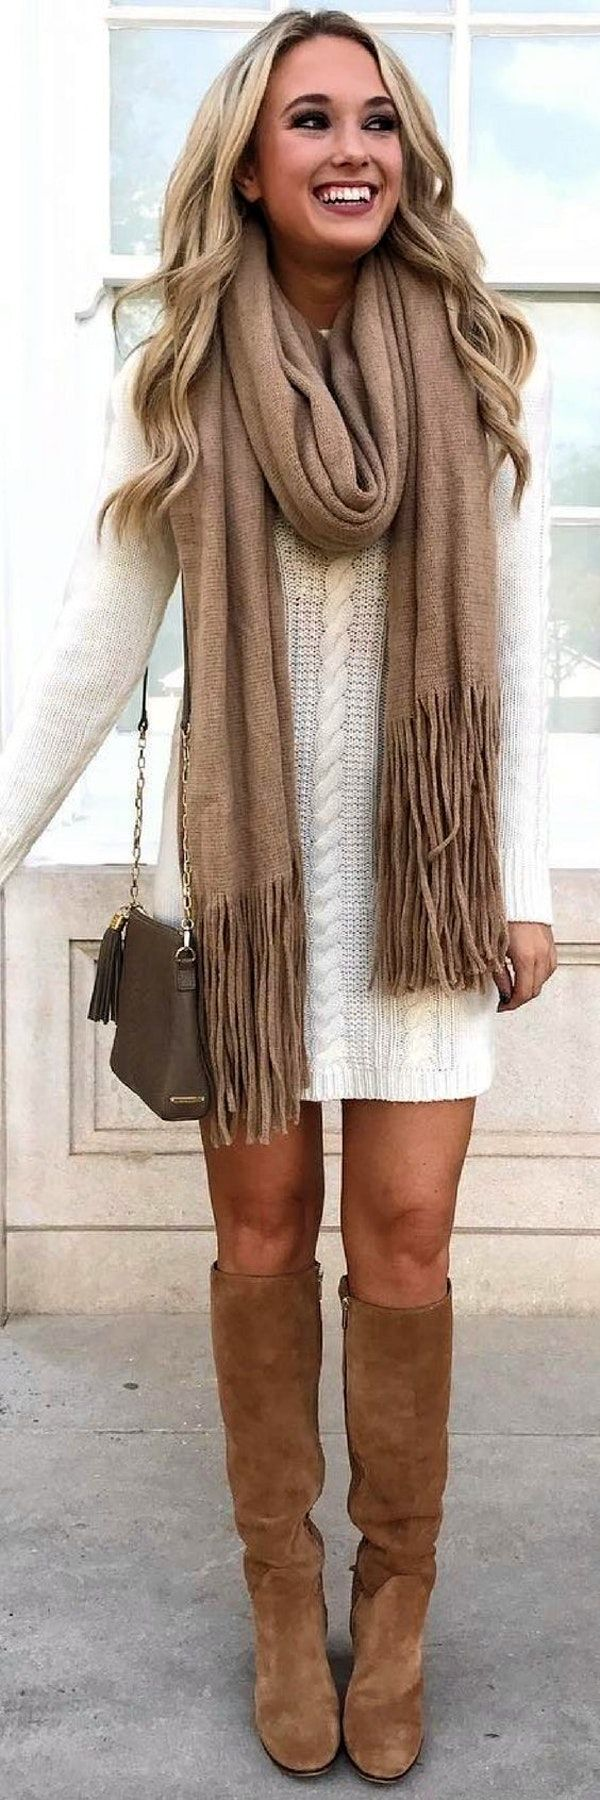 #winter #outfits white lace long-sleeved dress with brown fringed scarf and brown leather knee-high boots